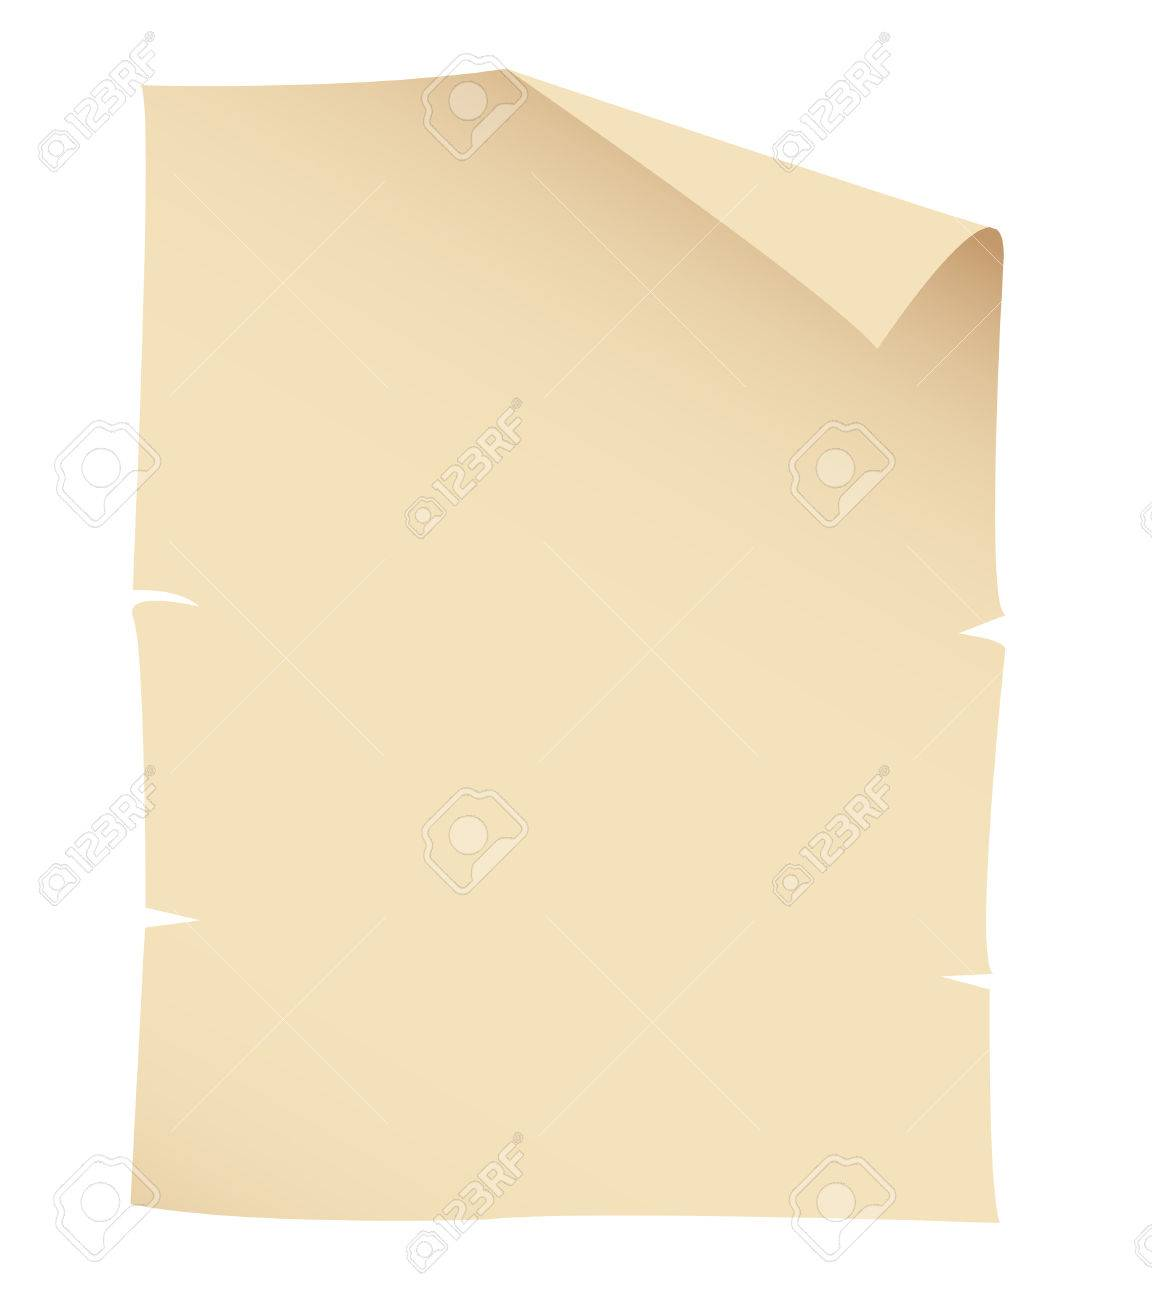 Illustration of Old Paper Banner isolated on a white background - 23637994